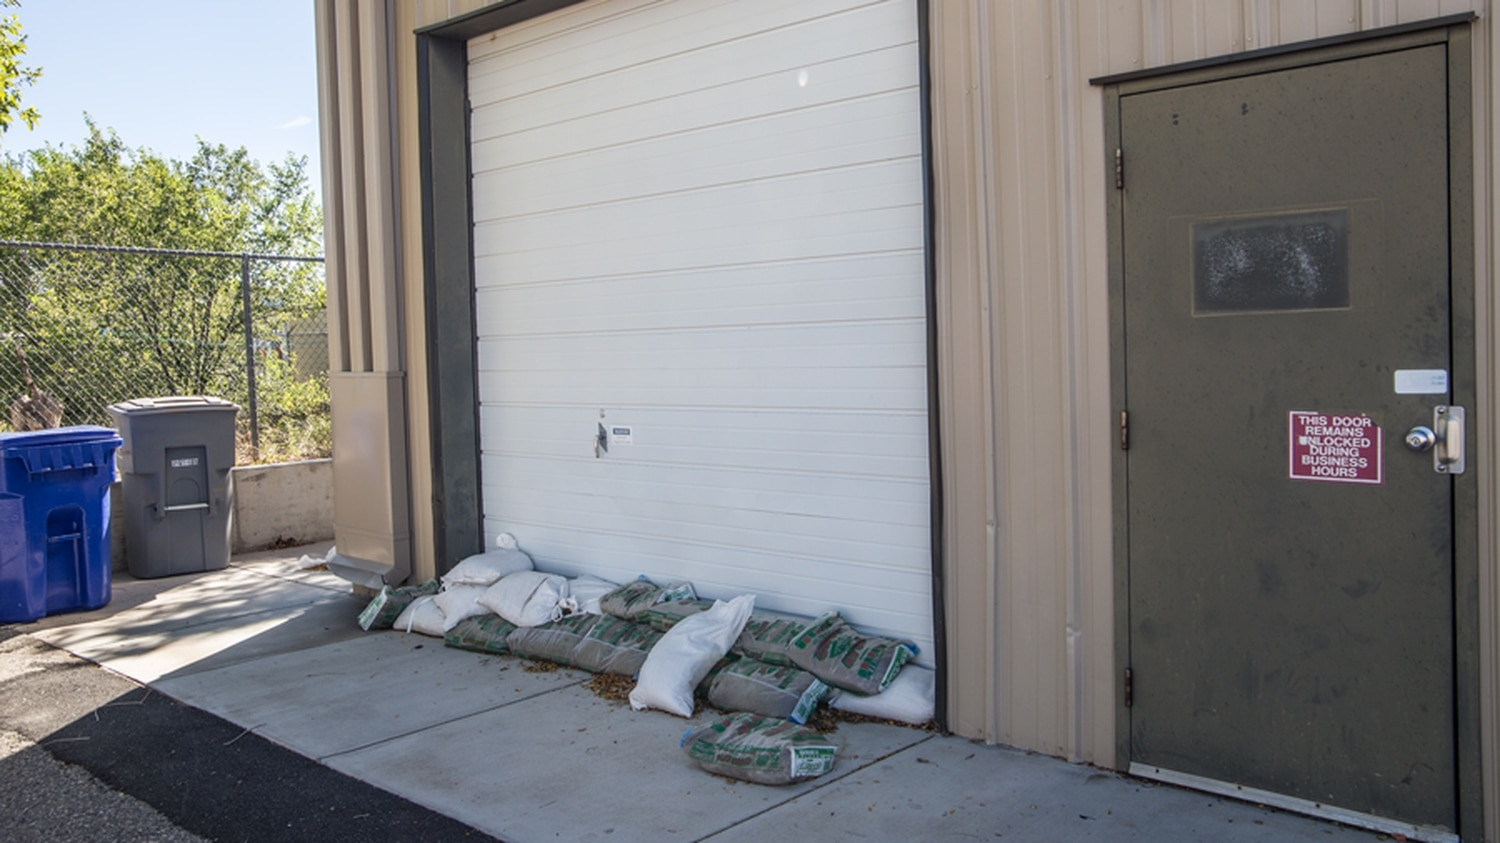 During flooding on July 23, water poured into the ArtSmart building through a small opening underneath a garage door.